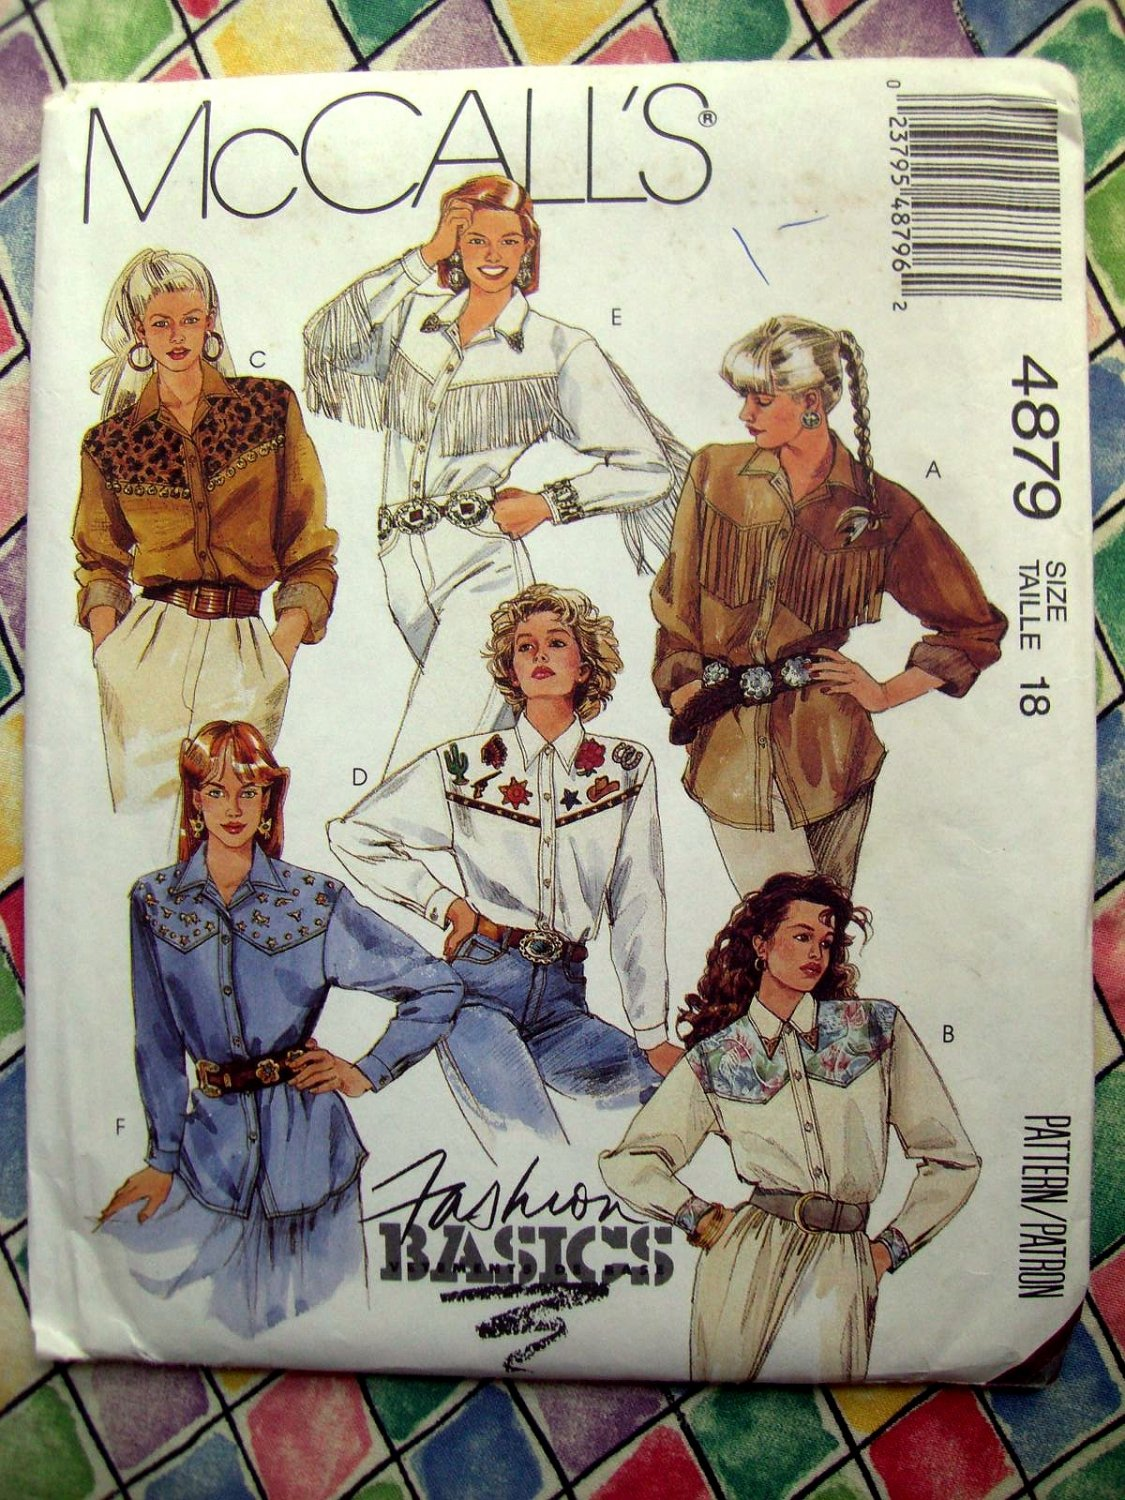 SOLD! McCalls Pattern # 4879 Misses Fringed Shirt & Western Shirt Size 18